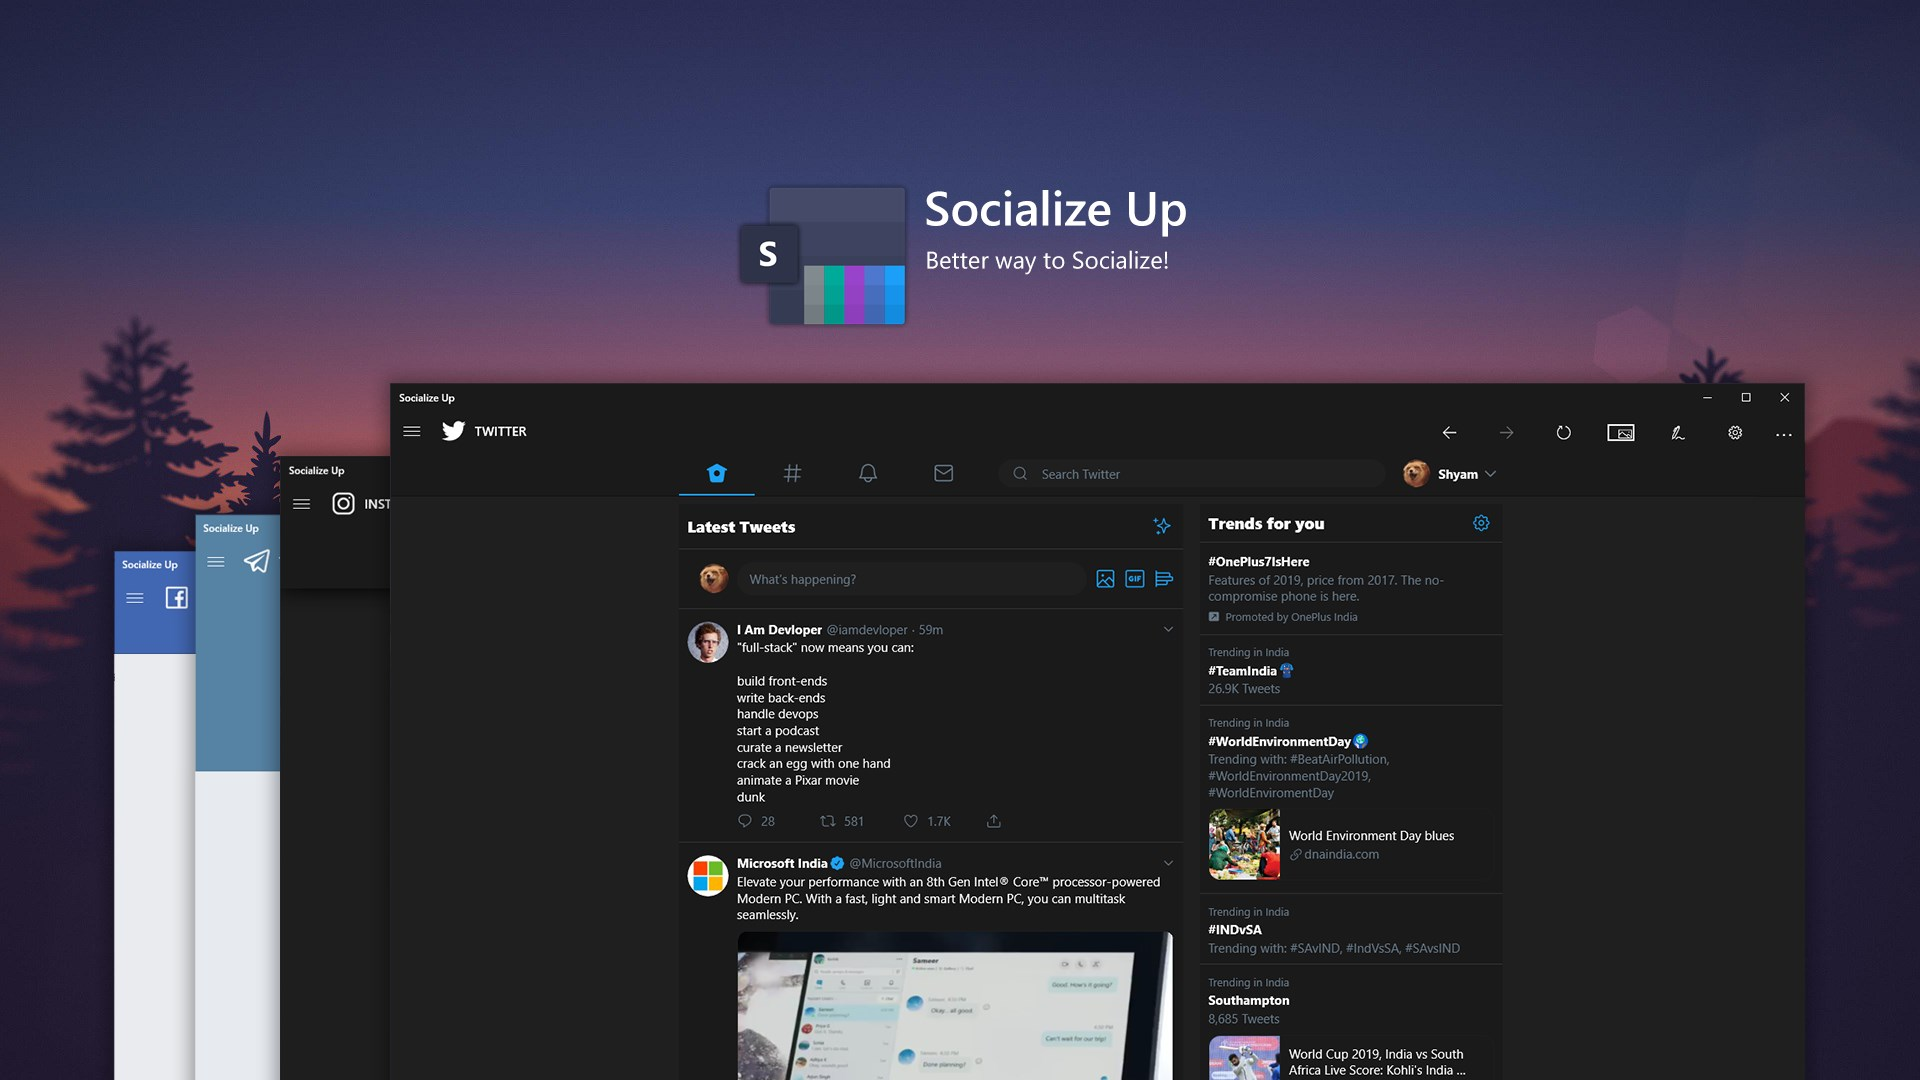 Get Socialize Up - Twitter, Instagram, Facebook and more - Microsoft